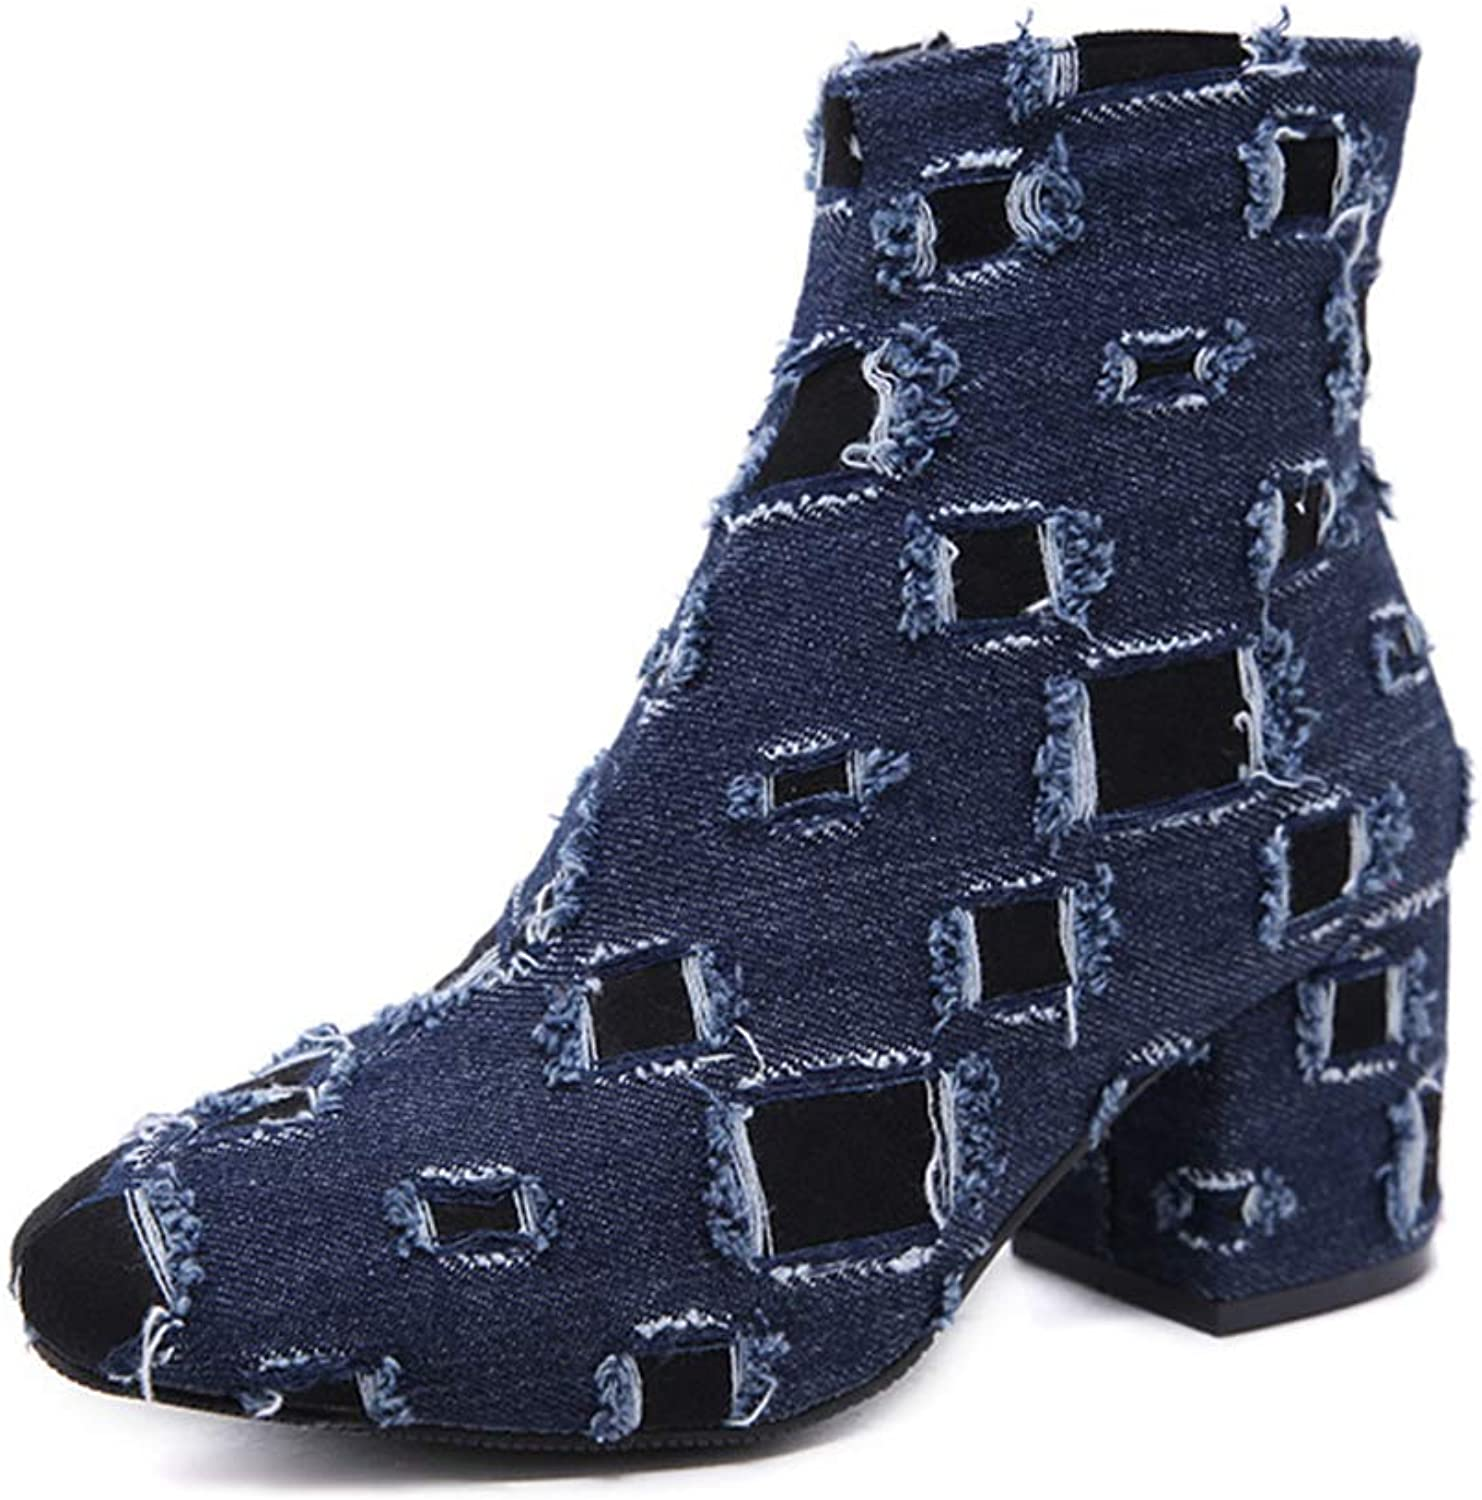 Zarbrina Womens Chunky Block Heels Ankle Boots Fashion Sexy Pointed Toe Short Plush Zipper Up Mid Calf Winter Dress Party shoes